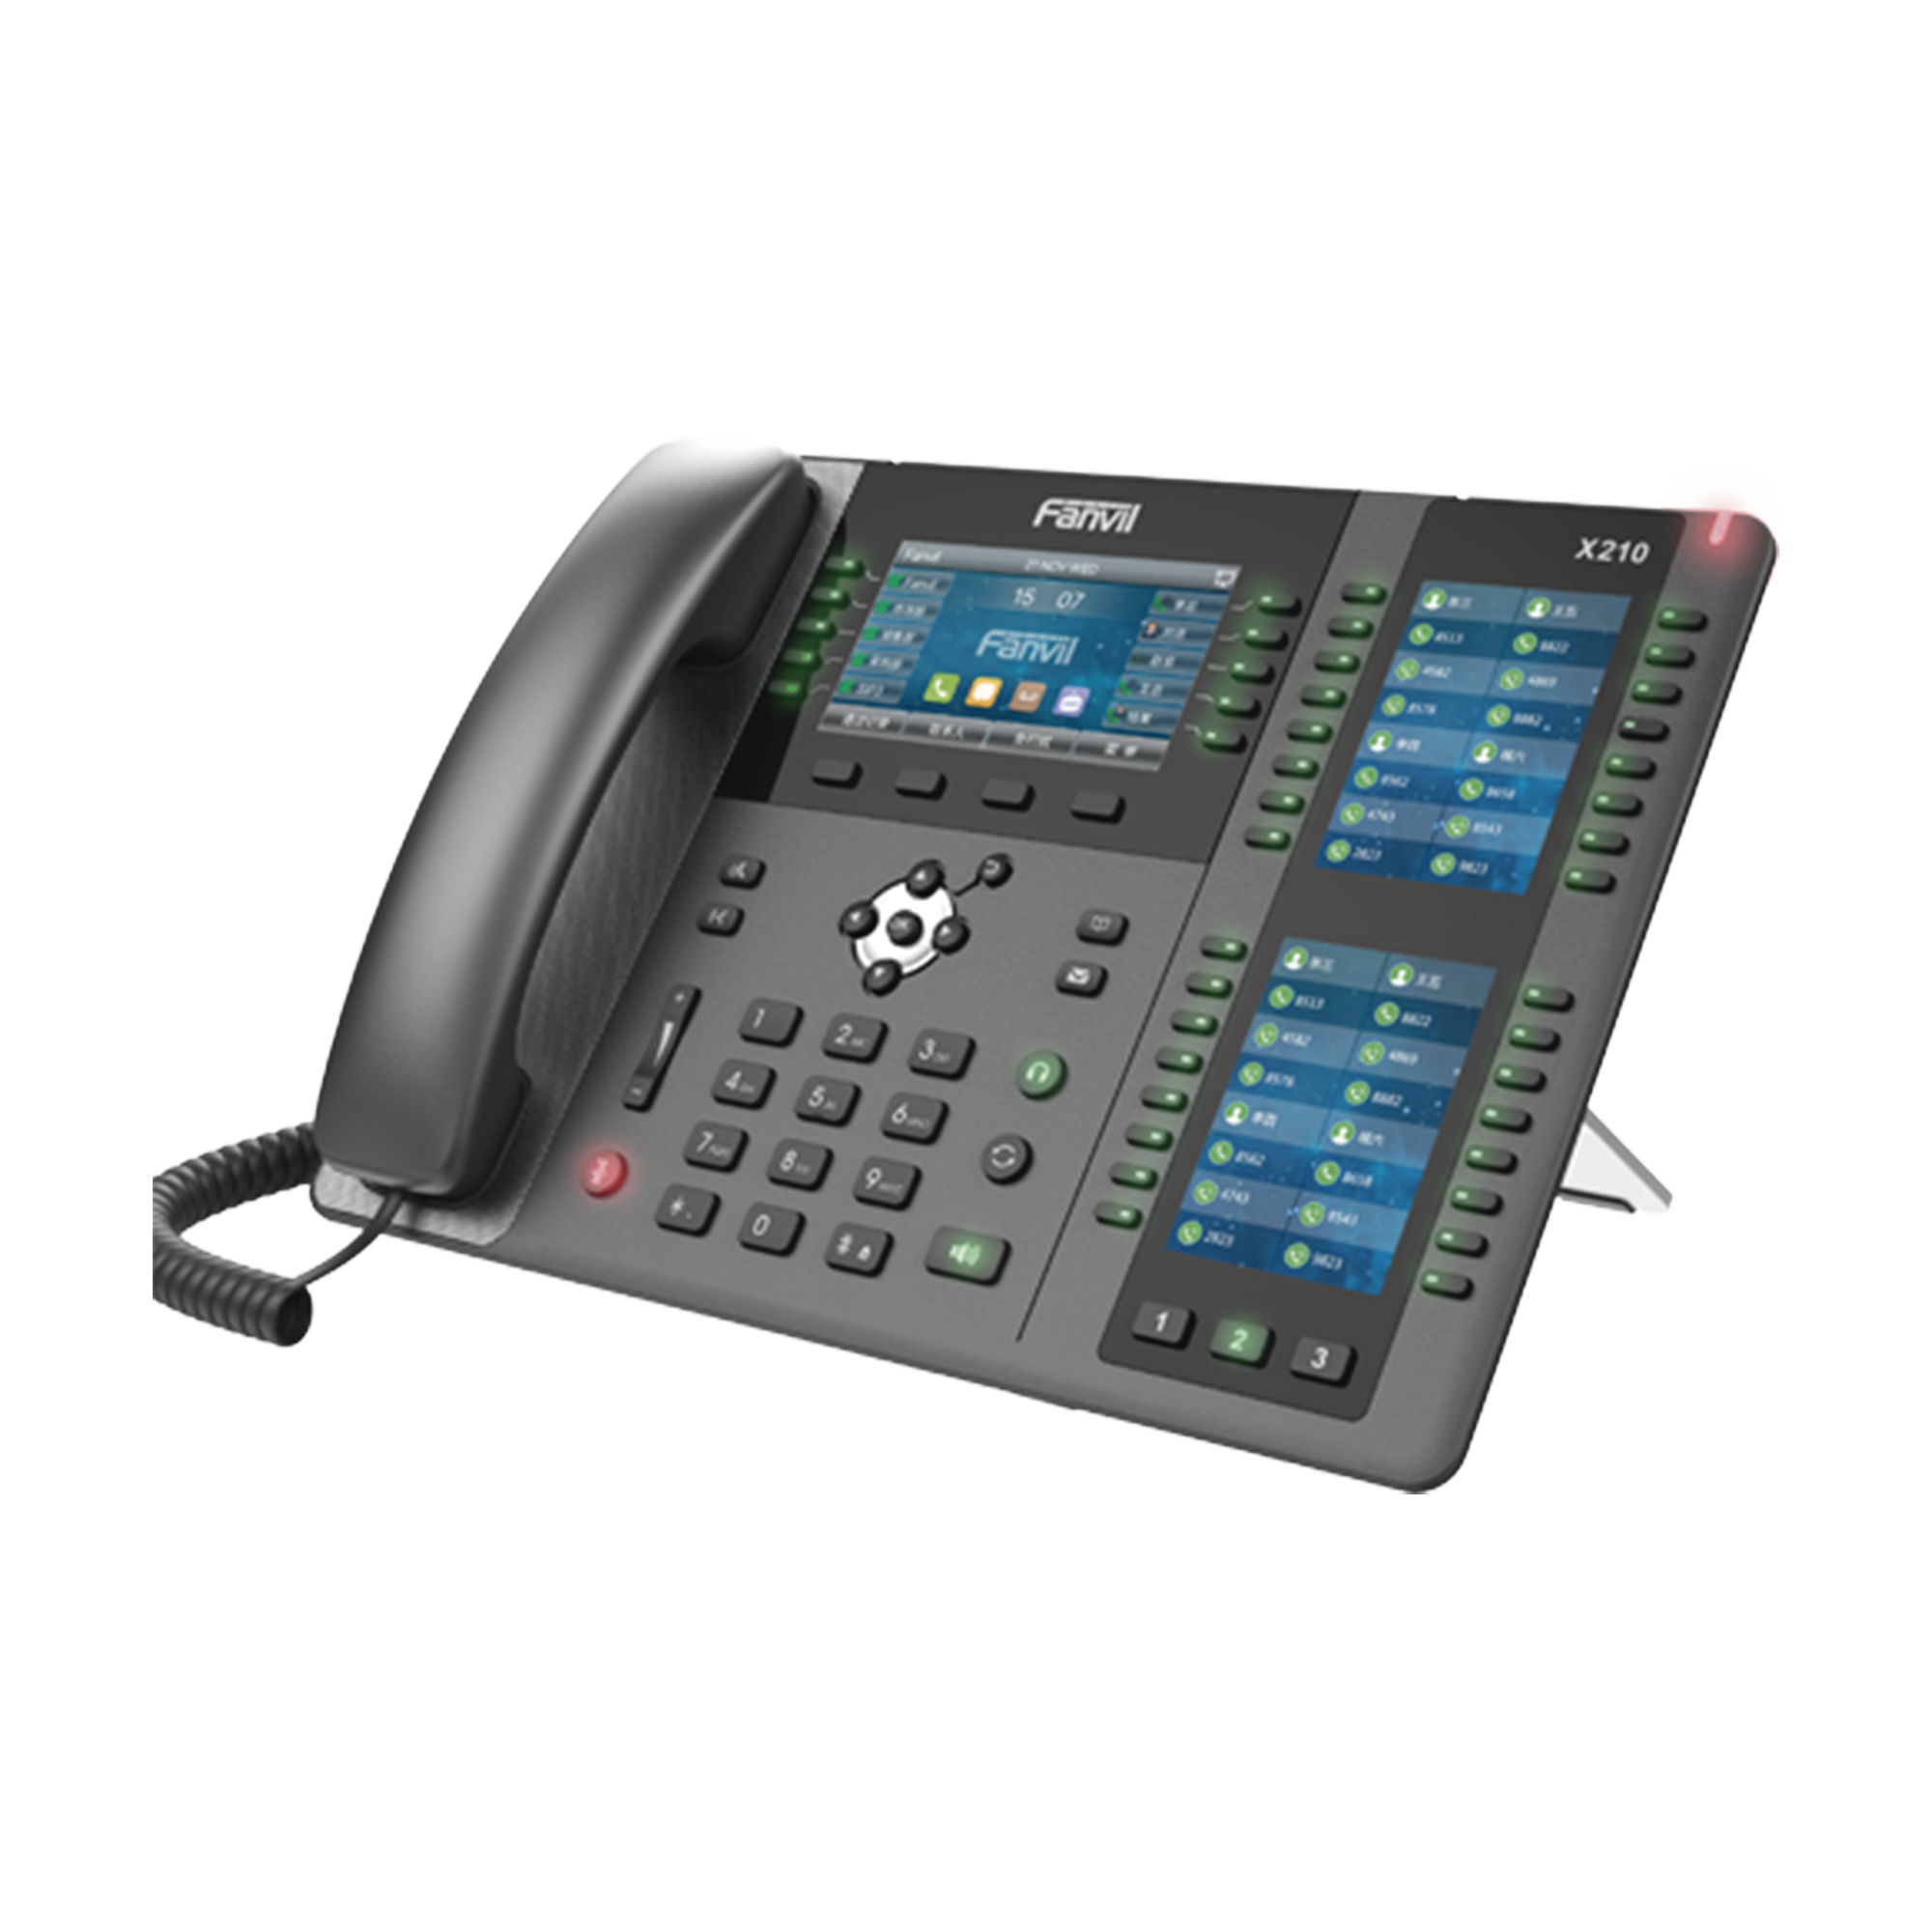 Telefono empresarial IP hasta 20 lineas SIP, 106 botones DSS, con Bluetooth integrado para diademas, puertos Gigabit, soporta recepcion video, PoE